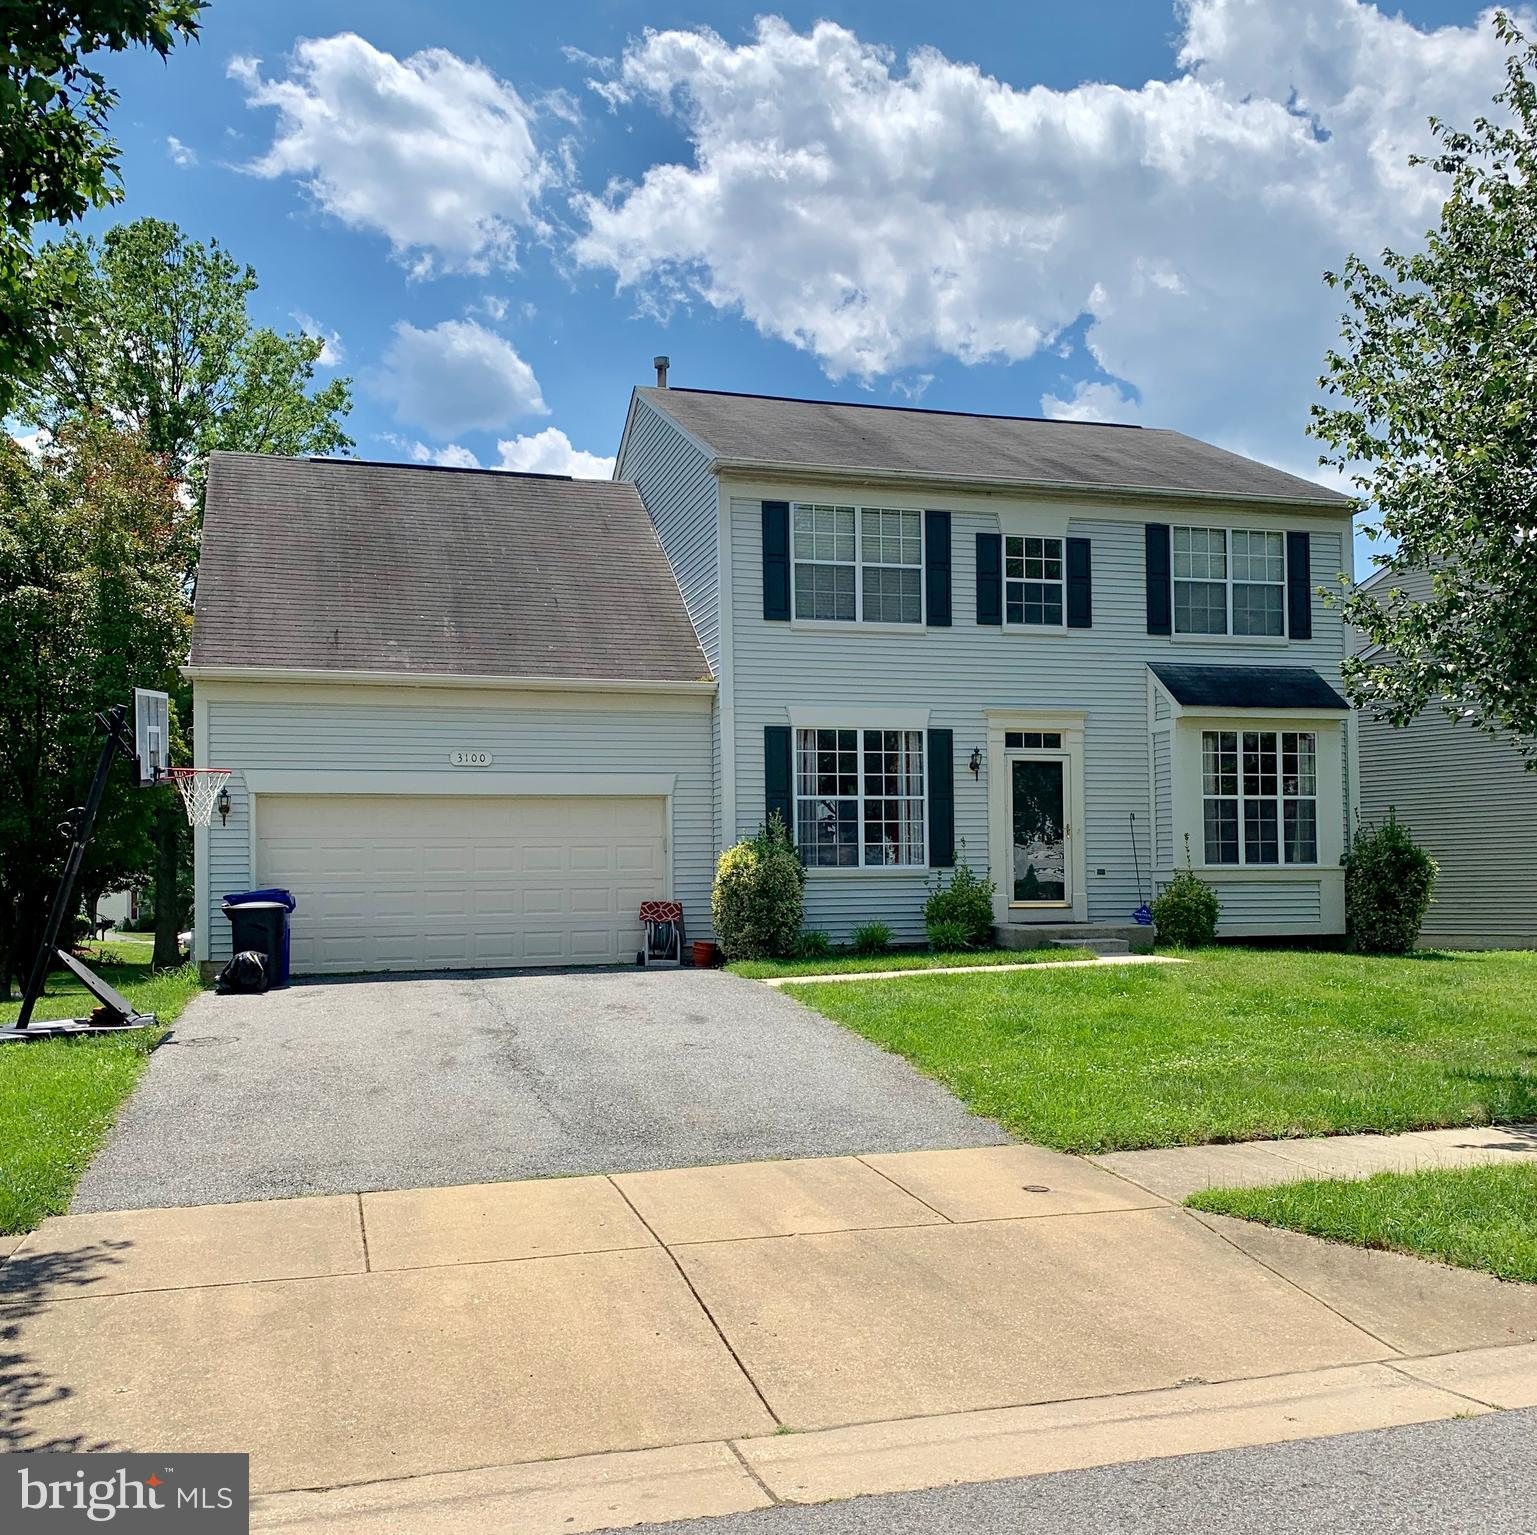 3100 EAGLES NEST DRIVE, BOWIE, MD 20716